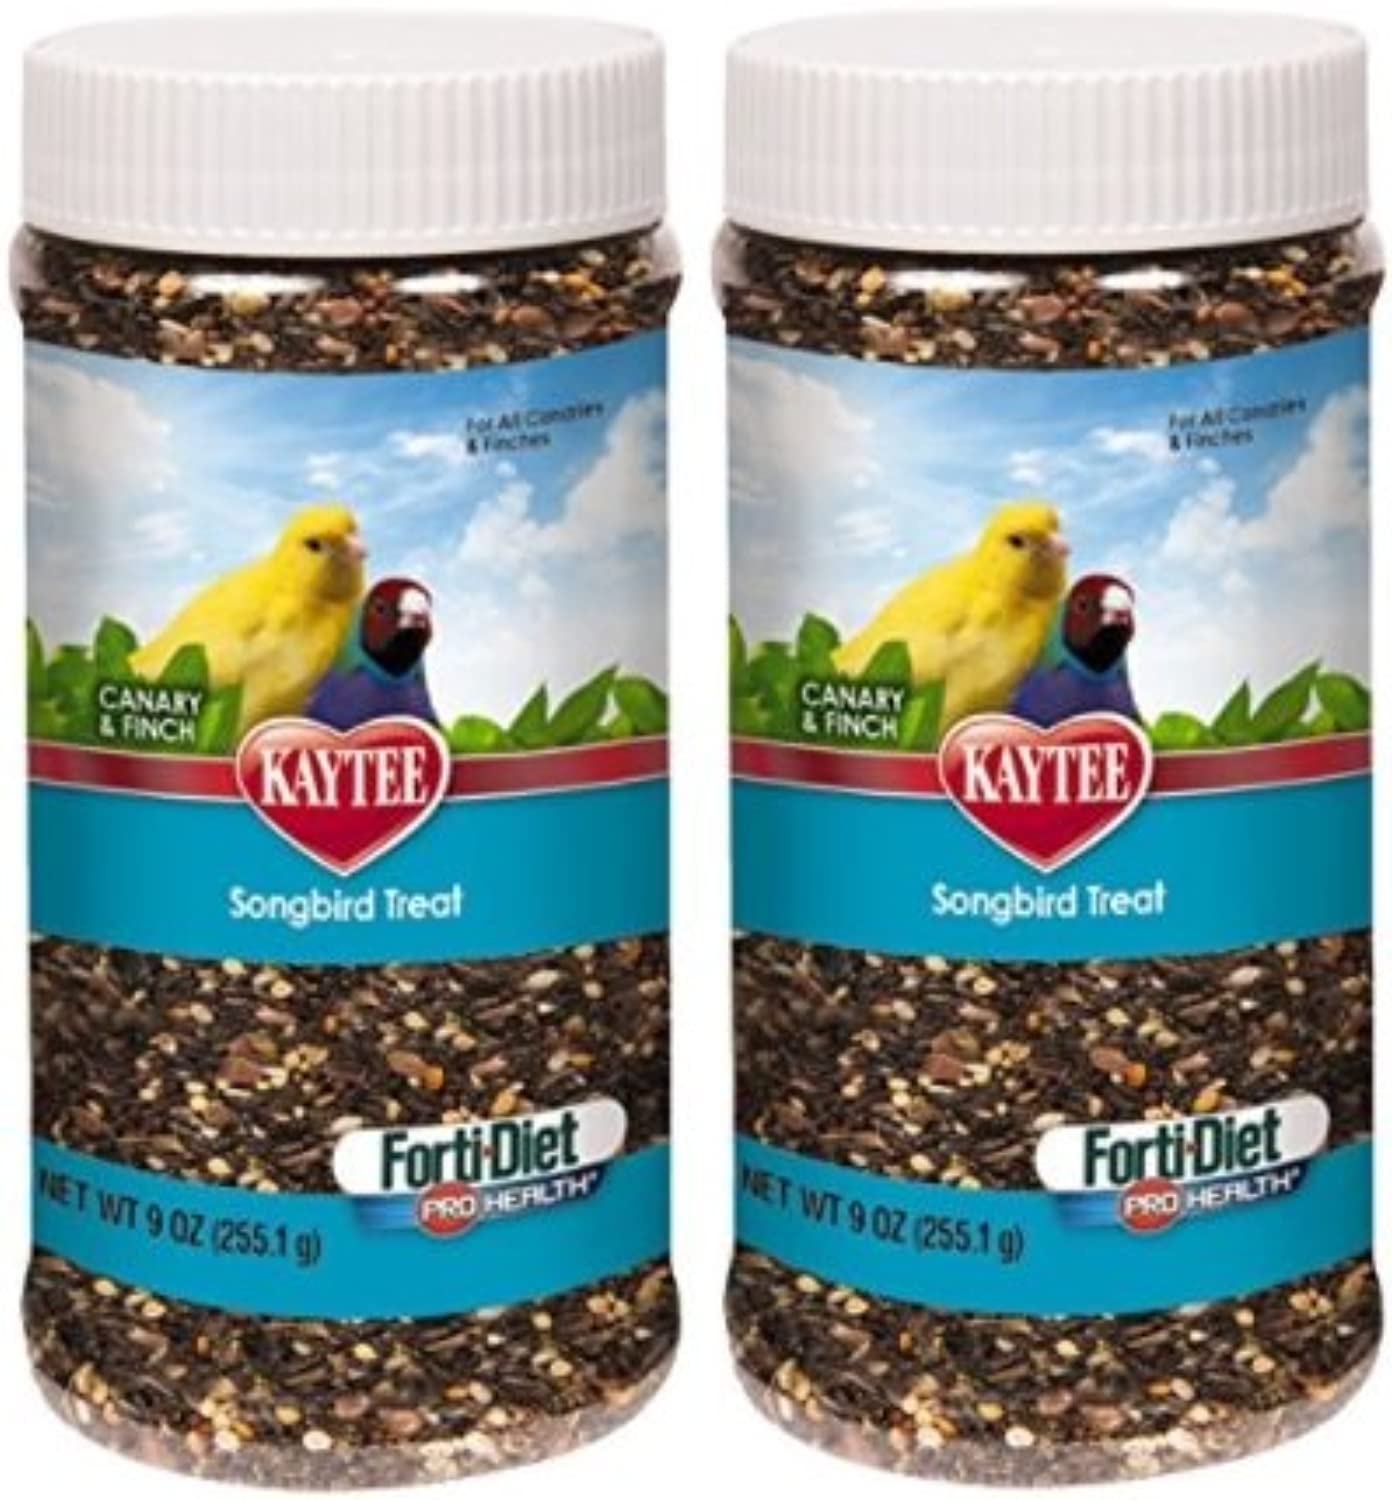 Kaytee FortiDiet Pro Health Canary and Finch Songbird Treat, 9oz jar (2 Pack)